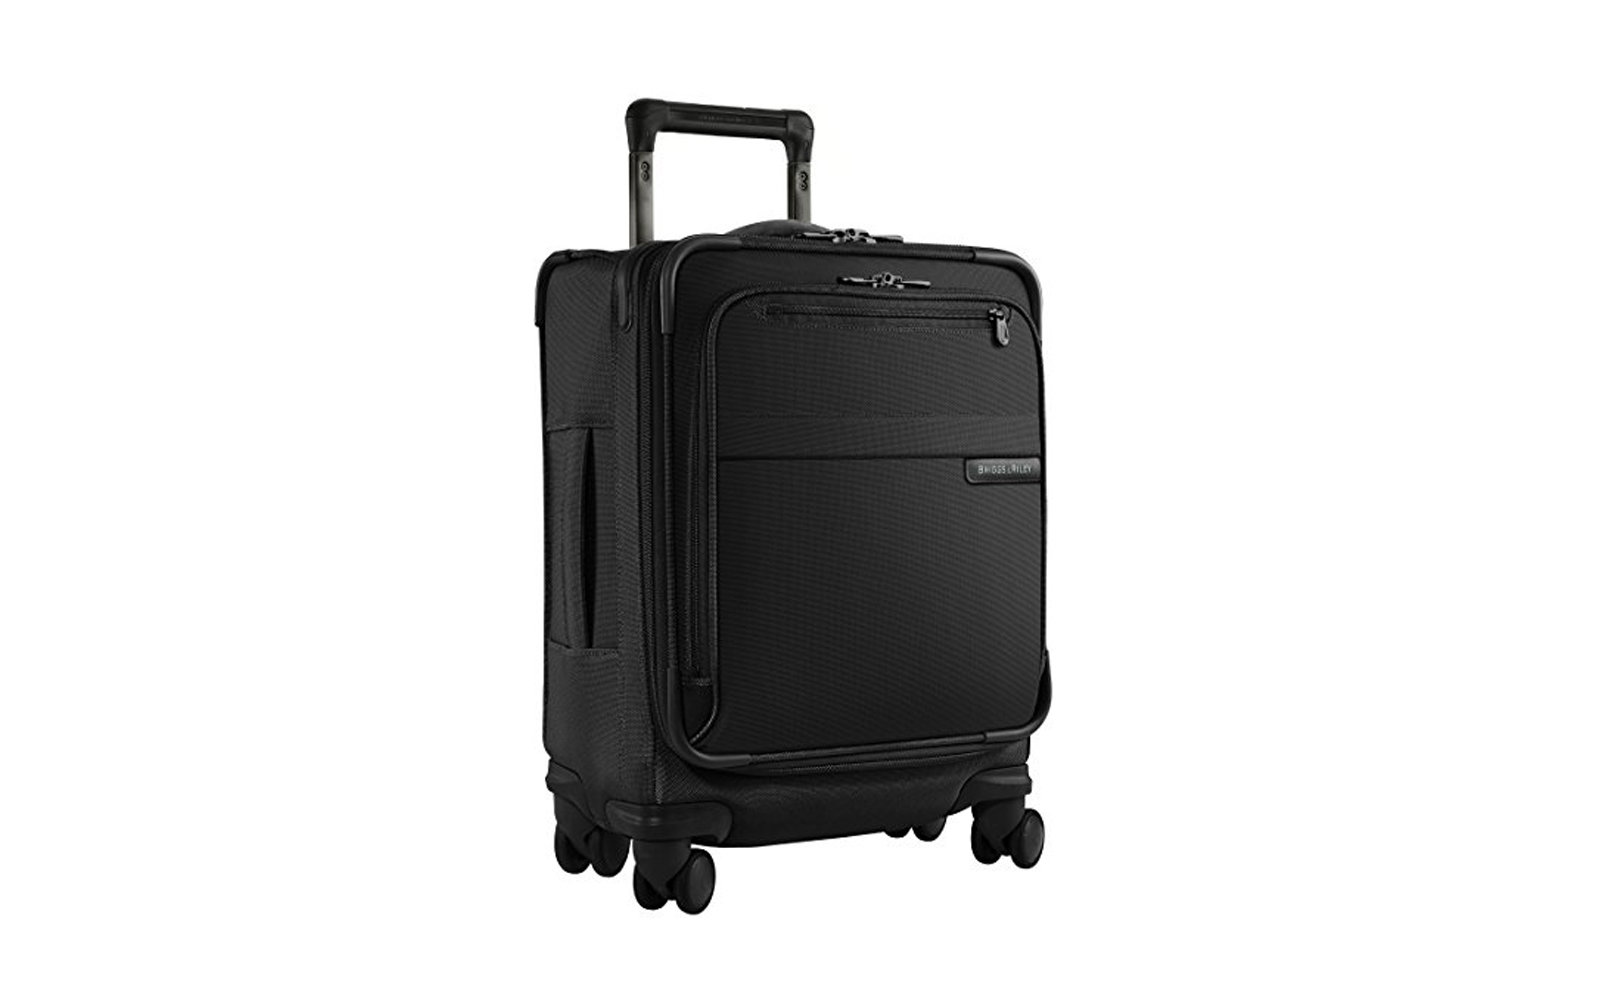 The Best Carry-On Luggage You Can Buy In 2019 recommend